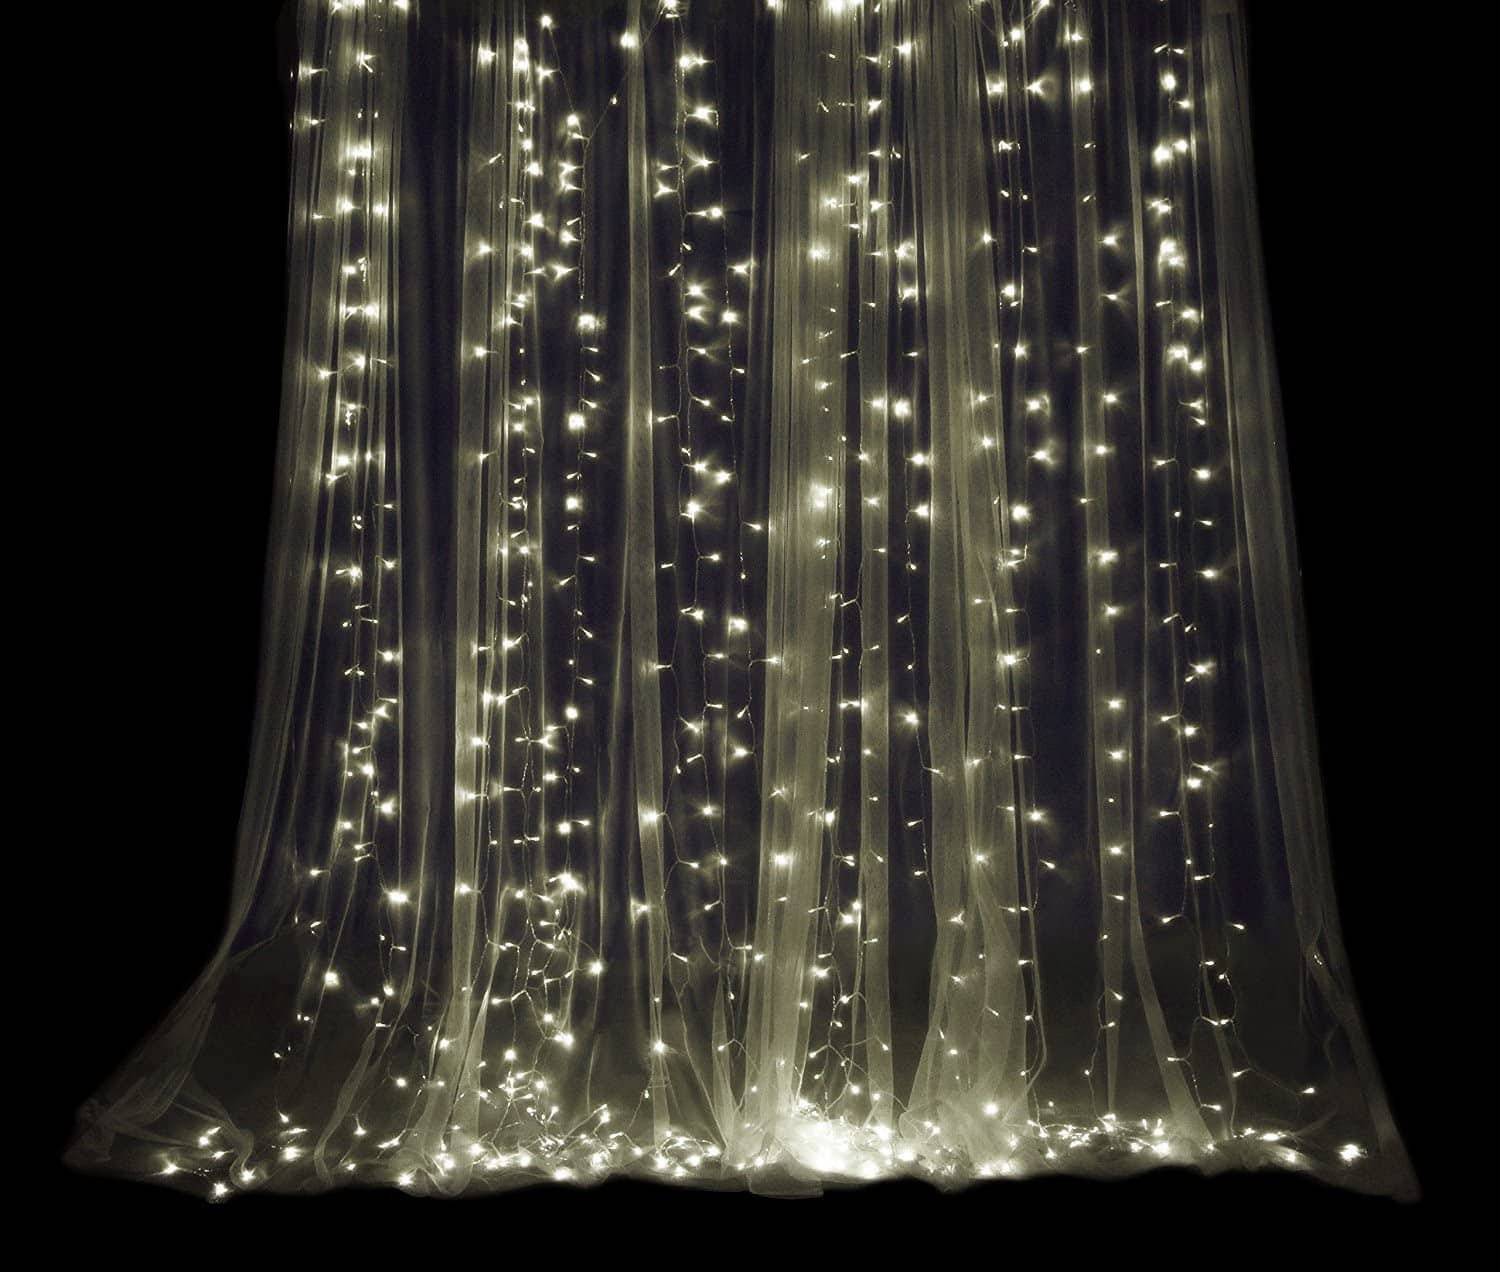 ProductWorks Indoor/Outdoor Curtain Bright White Micro LED Bulb Translucent 300 Count String Lights , 9.8' x 10' $10.29 FS w/ Prime